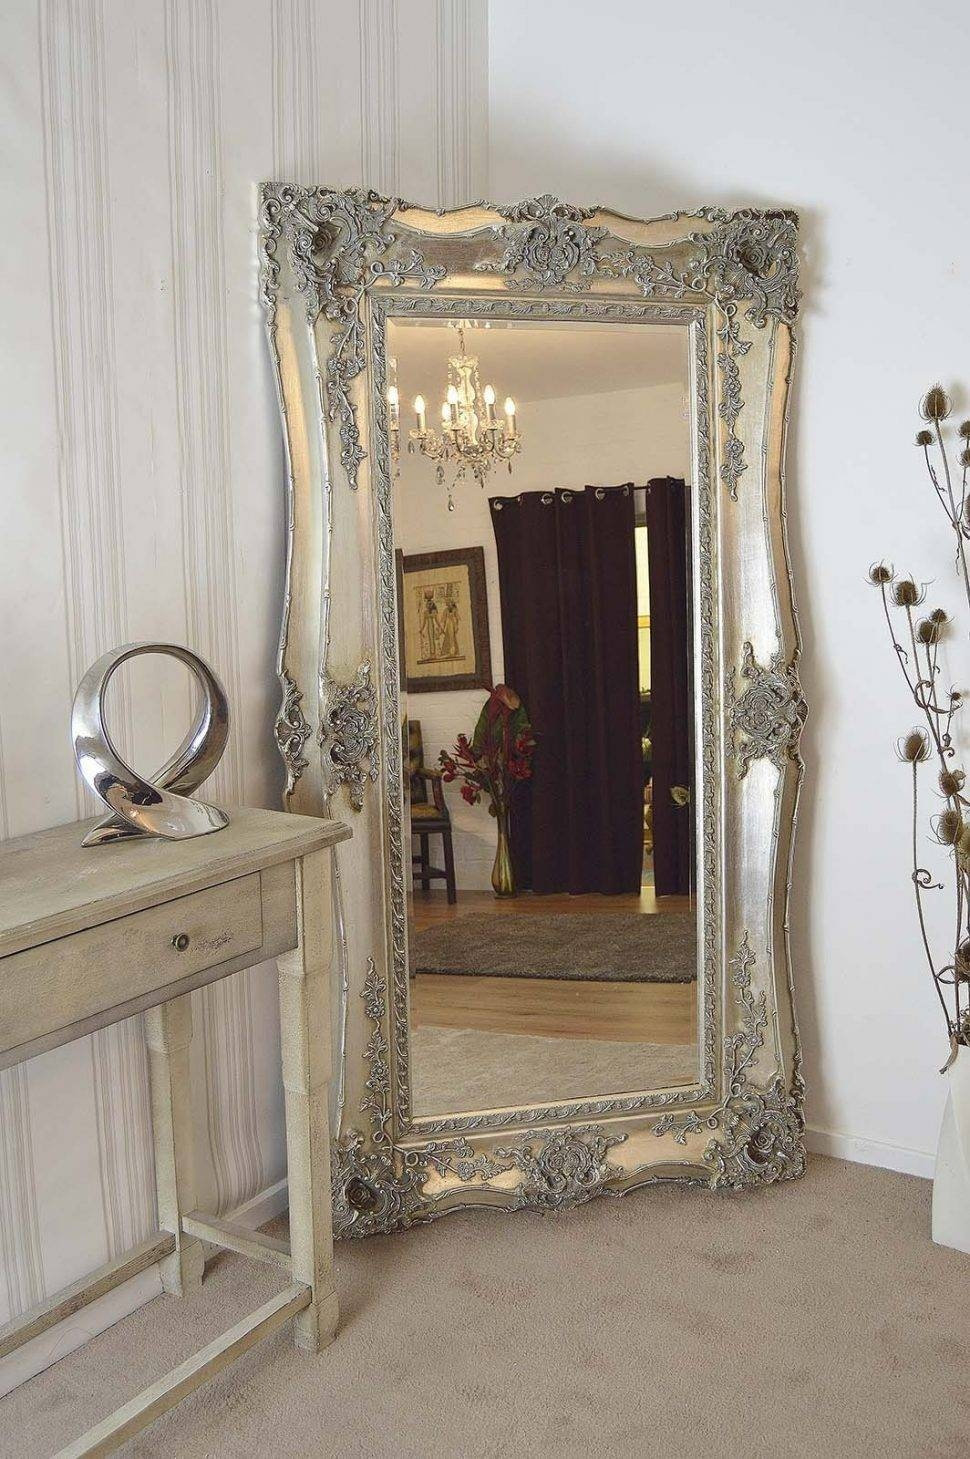 Bedroom Furniture : Large Gold Mirror Free Standing Mirror Wooden inside Free Standing Dressing Mirrors (Image 3 of 25)